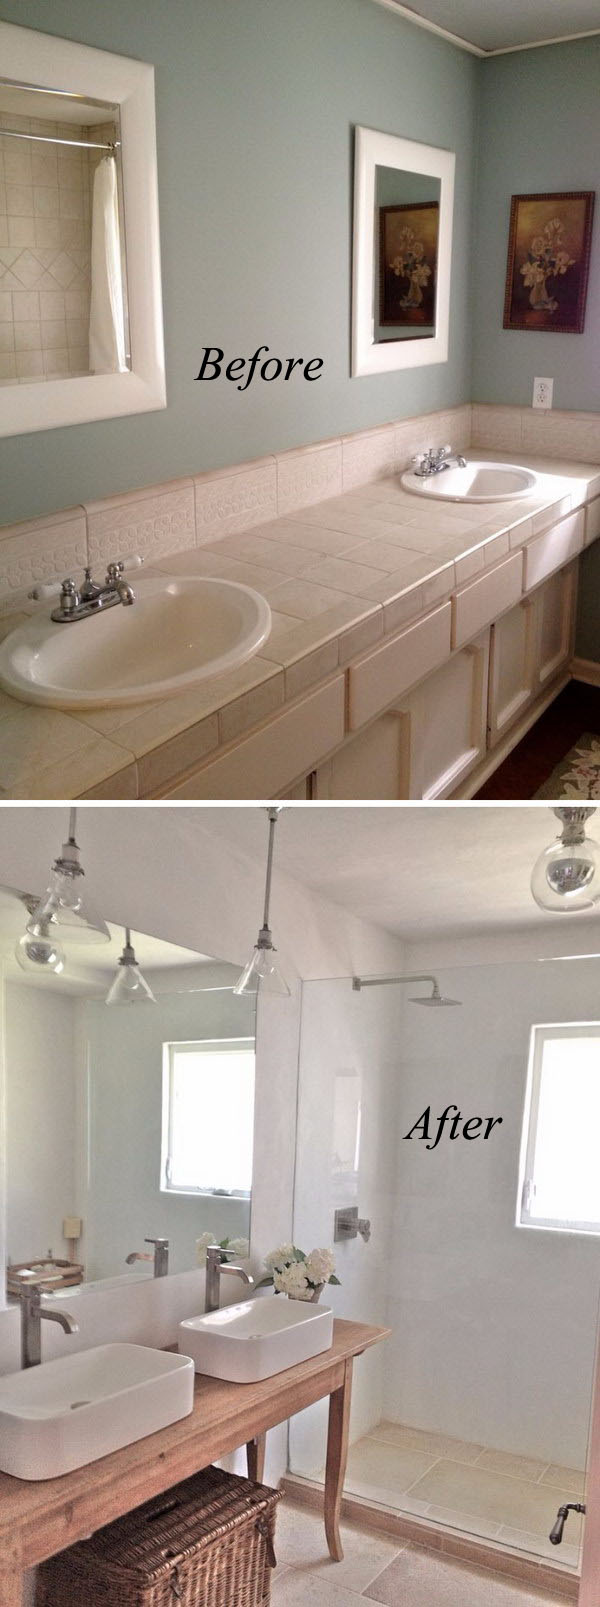 37-38-bathroom-remodel-before-and-after